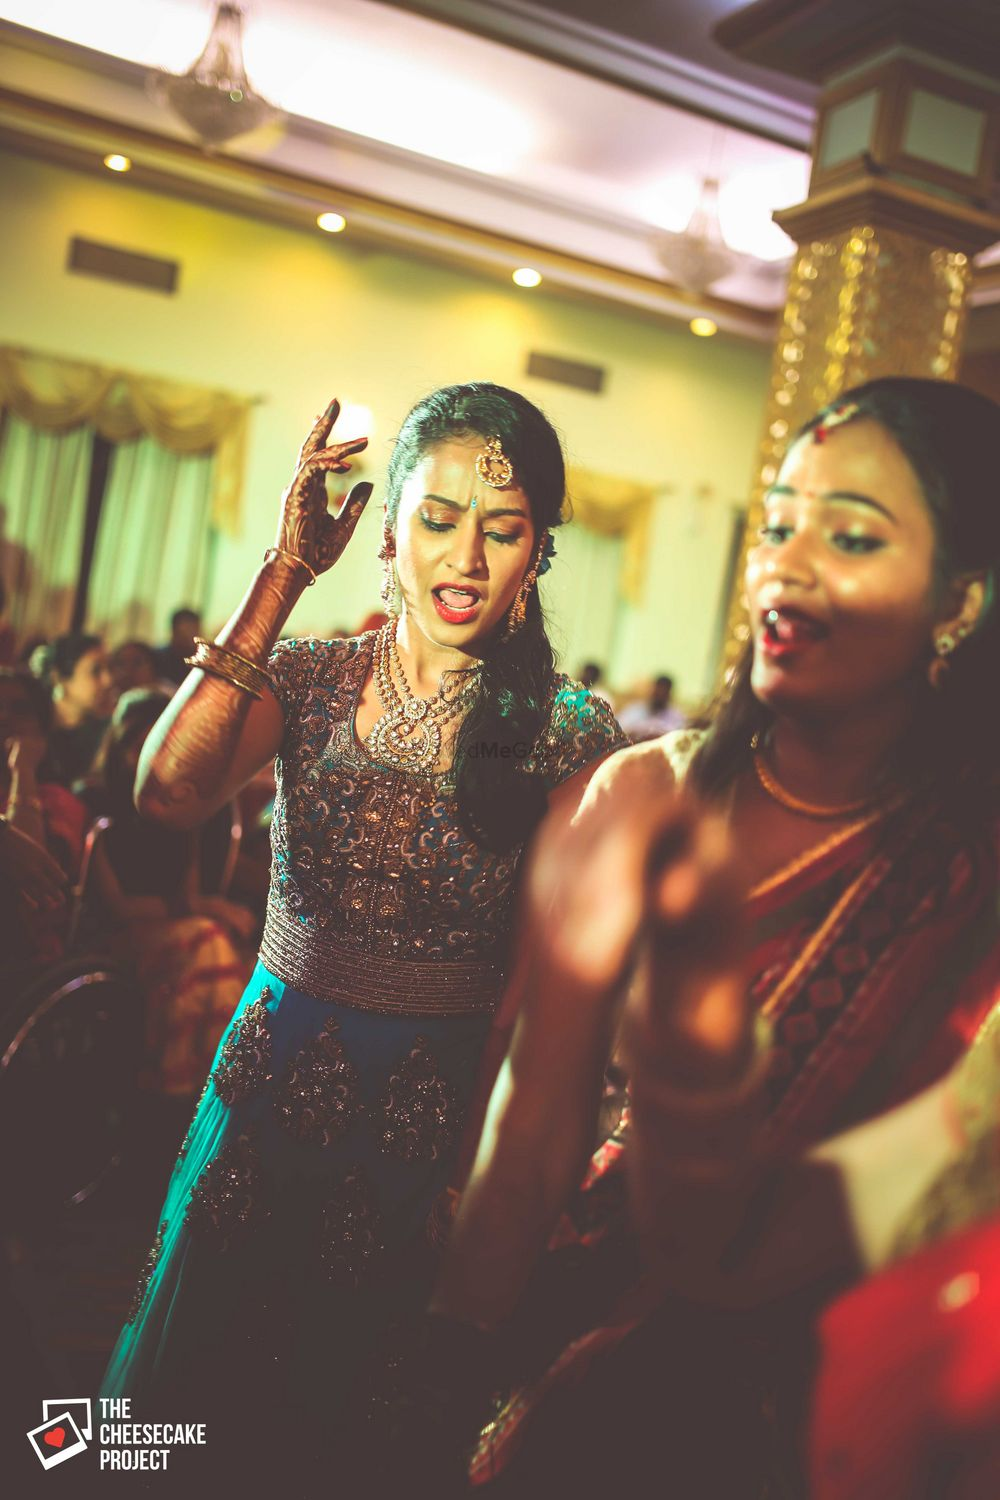 Photo From Megna + Aarjit - By The Cheesecake Project